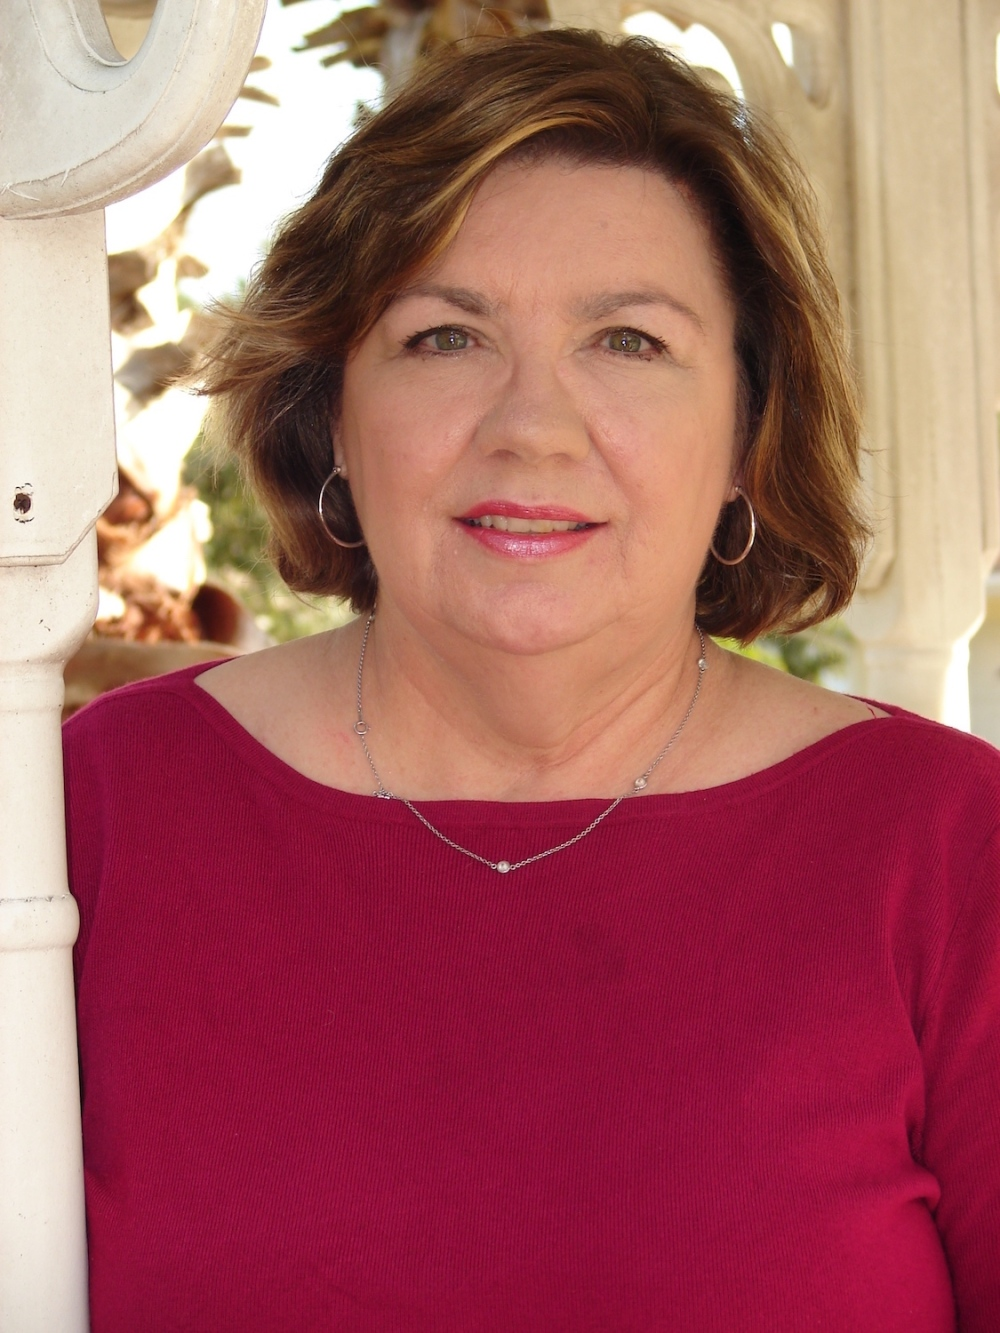 Headshot of middle aged woman  with chin length brown hair wearing magenta sweater posed outdoors.